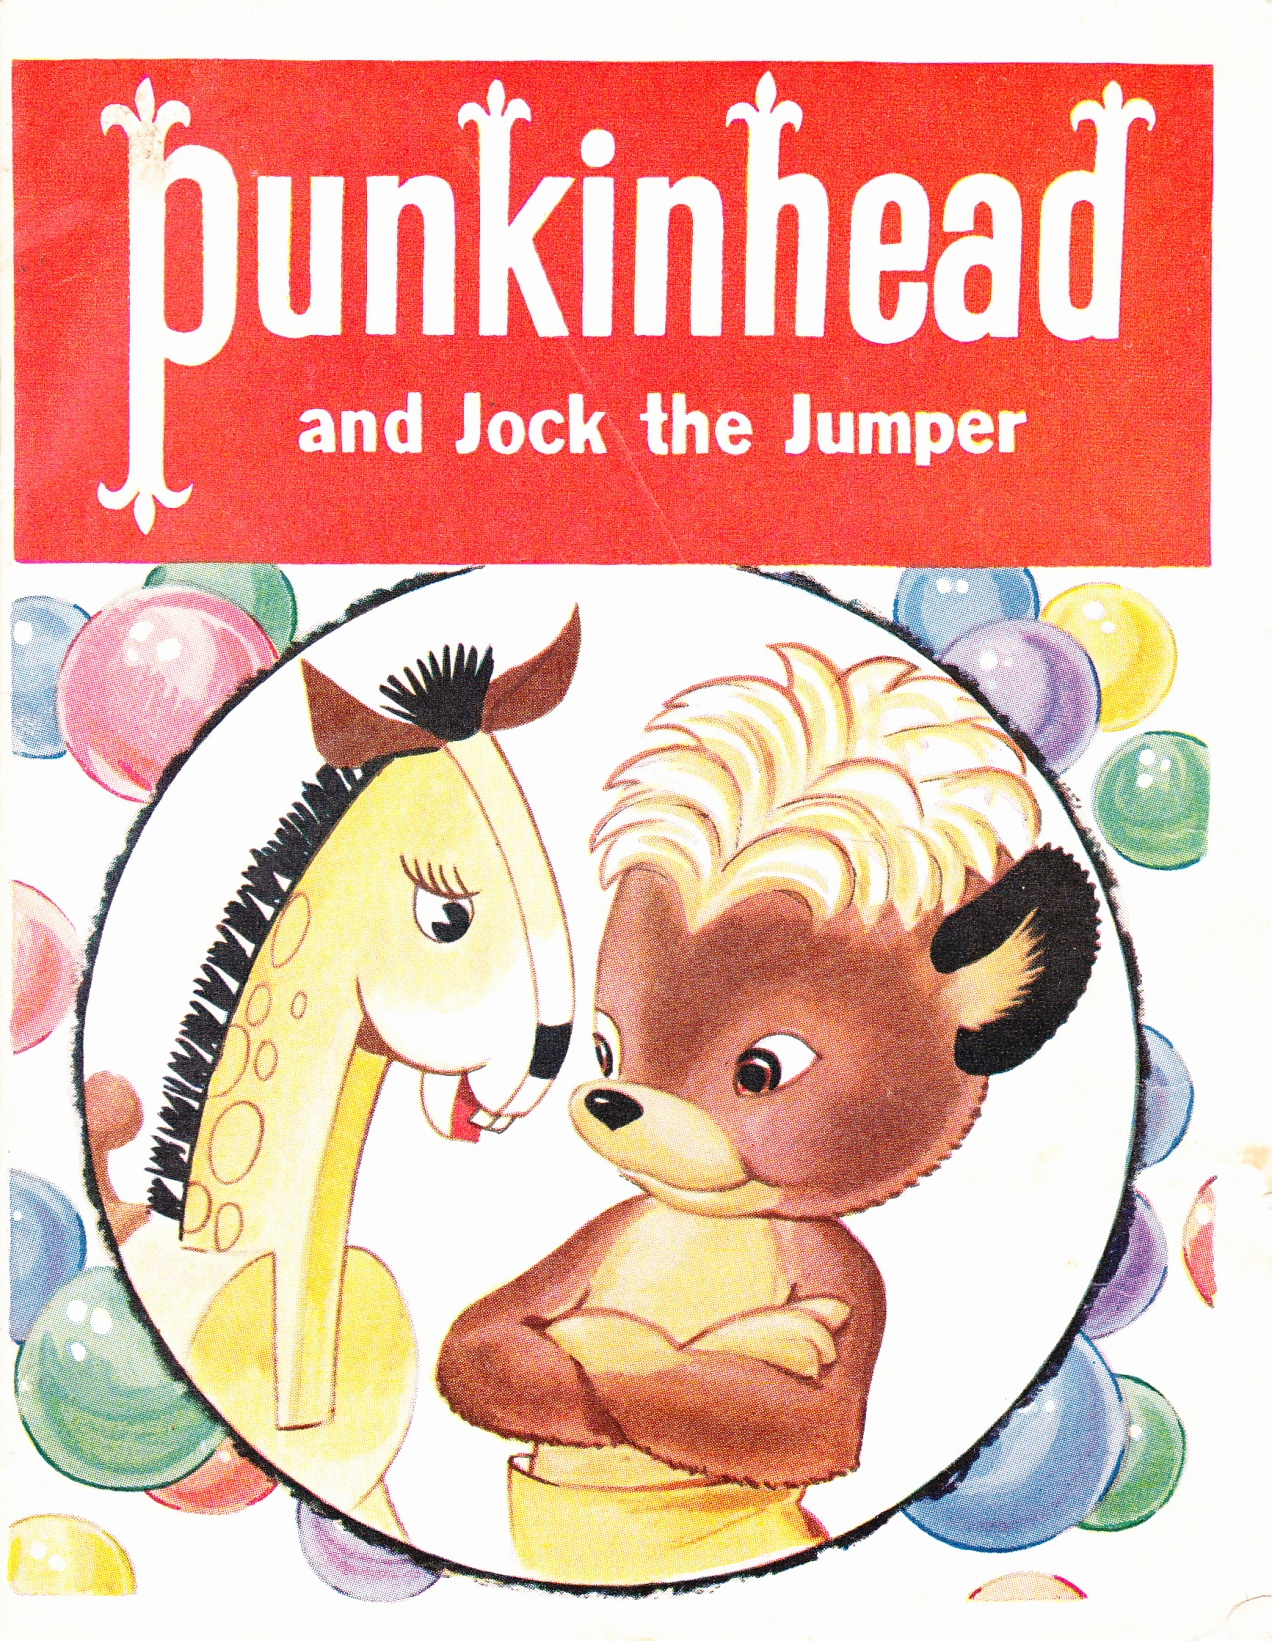 C:\Users\Robert\Documents\CARTOONING ILLUSTRATION ANIMATION\IMAGE CARTOON\IMAGE CARTOON P\PUNKINHEAD, and Jock the Jumper.jpg